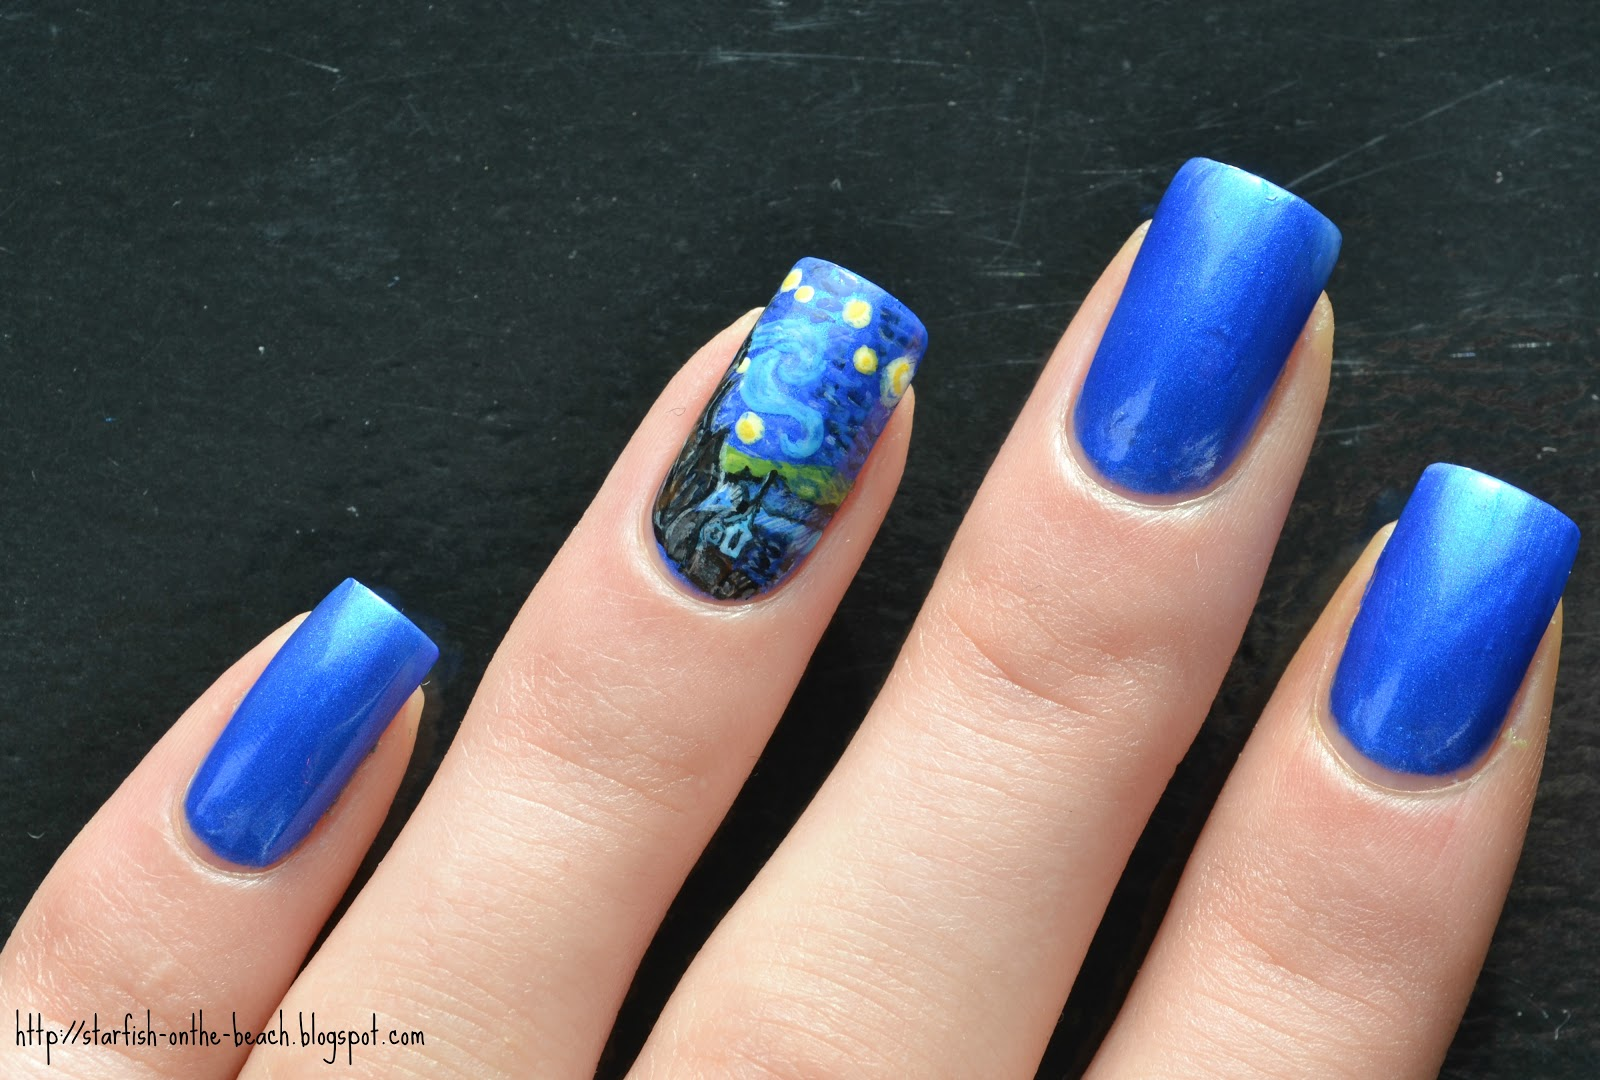 Starfish on the beach 31 day nail art challenge day 27 did you know that van gogh only sold one piece of art when he was alive and it was to his brother okay okay ill get to the nail art p prinsesfo Gallery